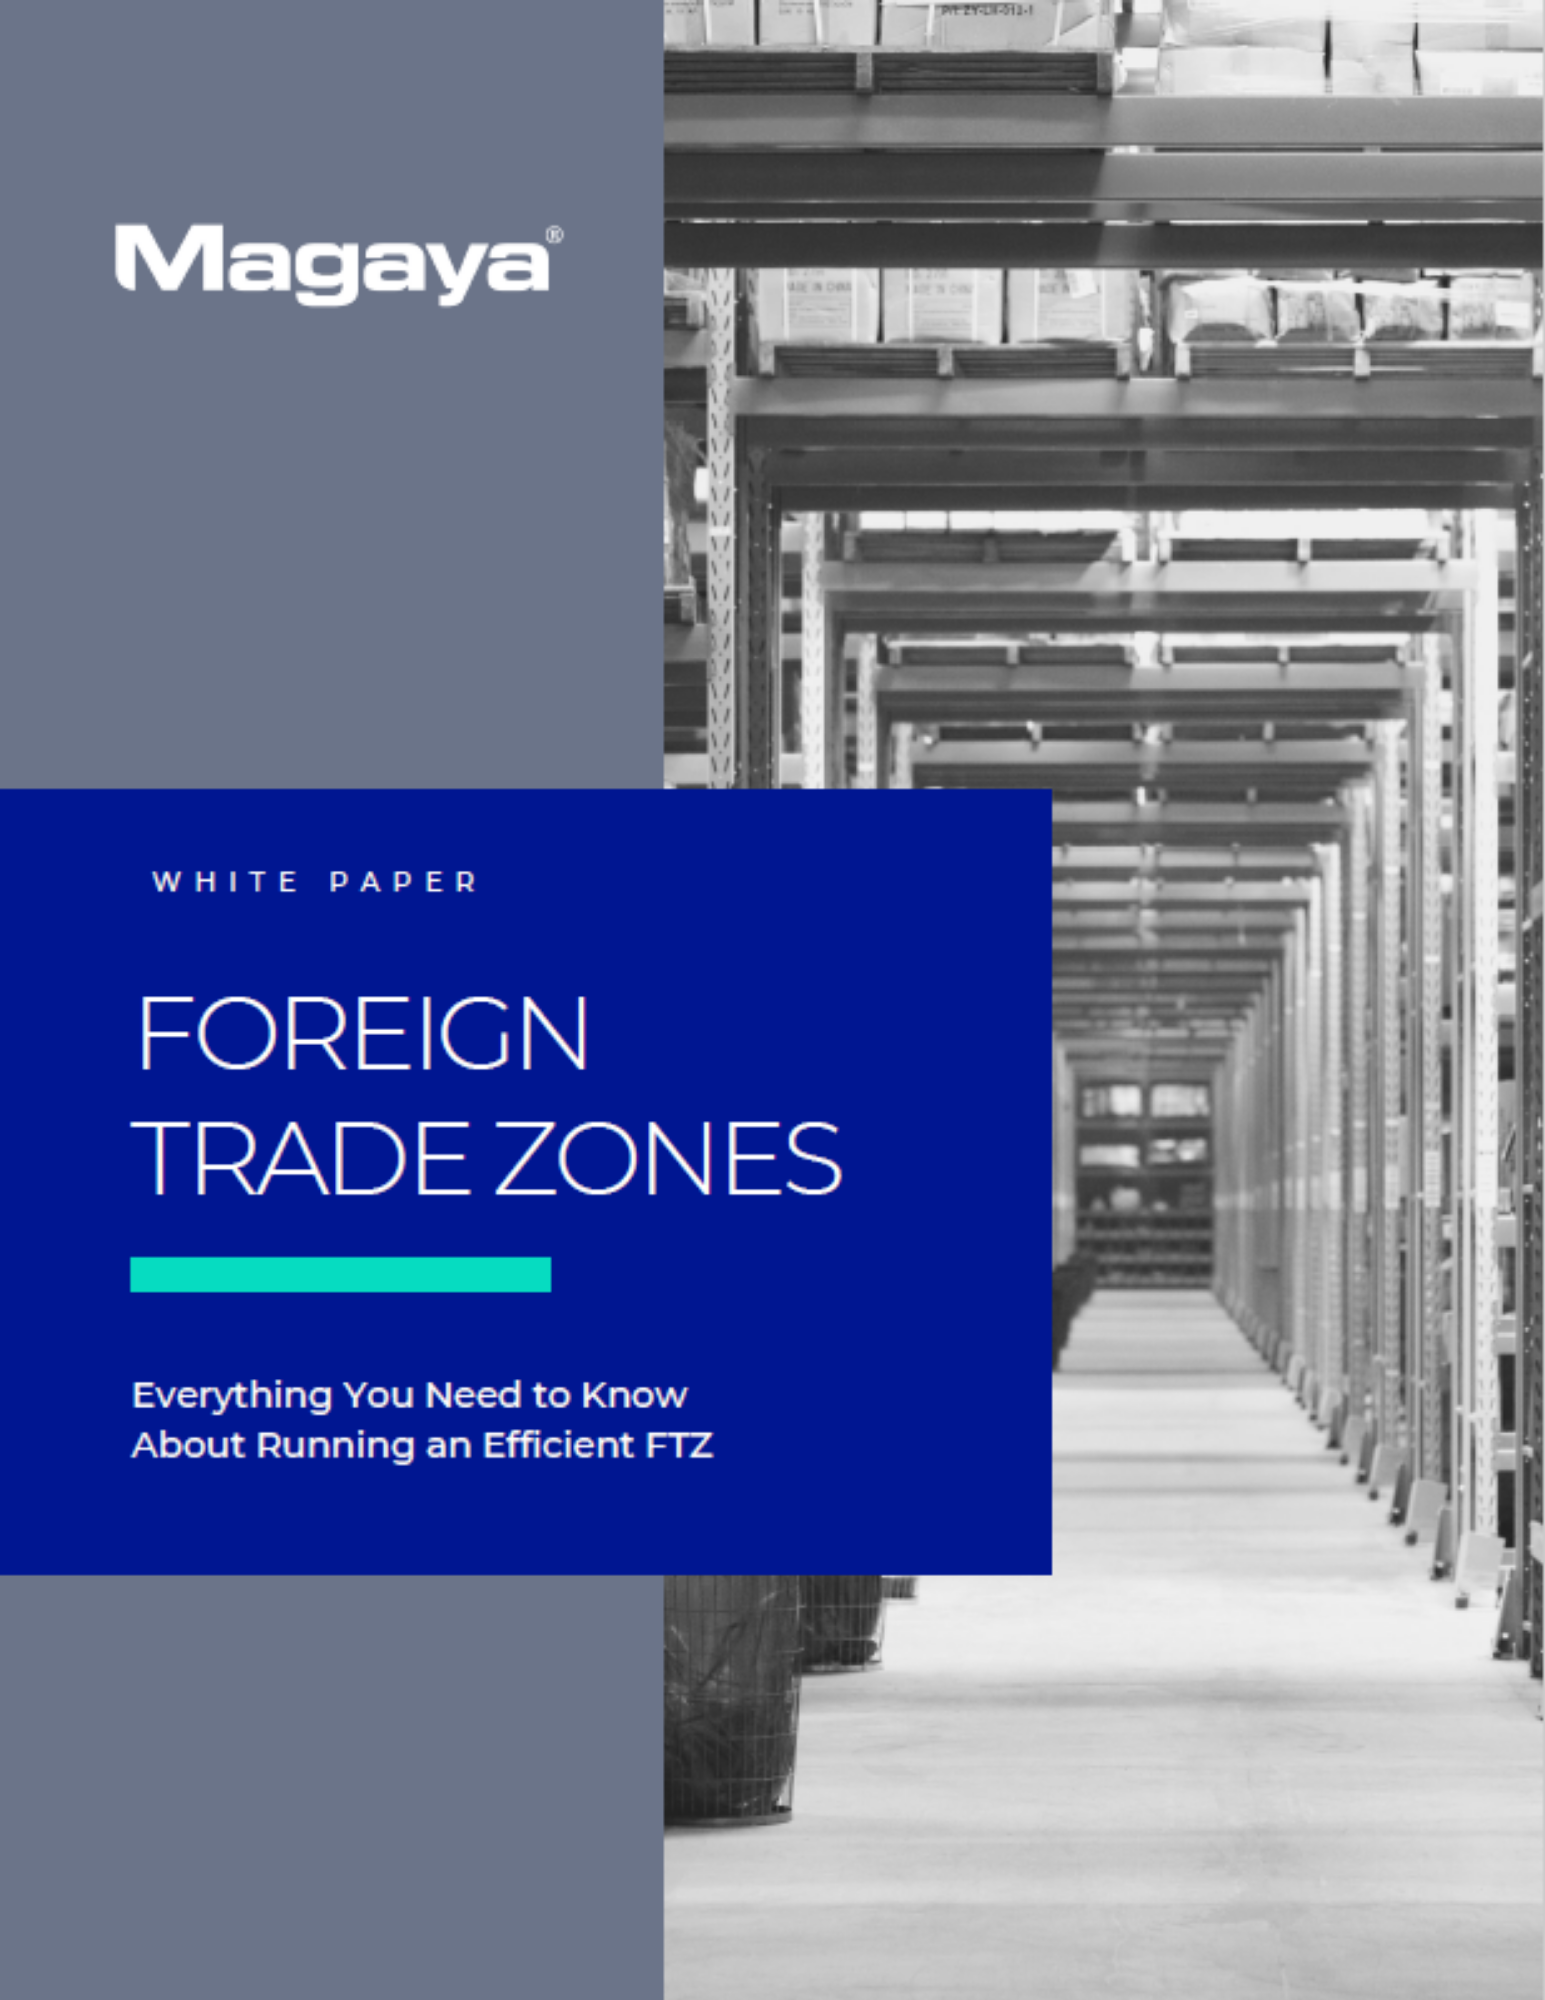 FTZ White Paper Cover - Foreign Trade Zones - Everything You Need to Run an Efficient FTZ